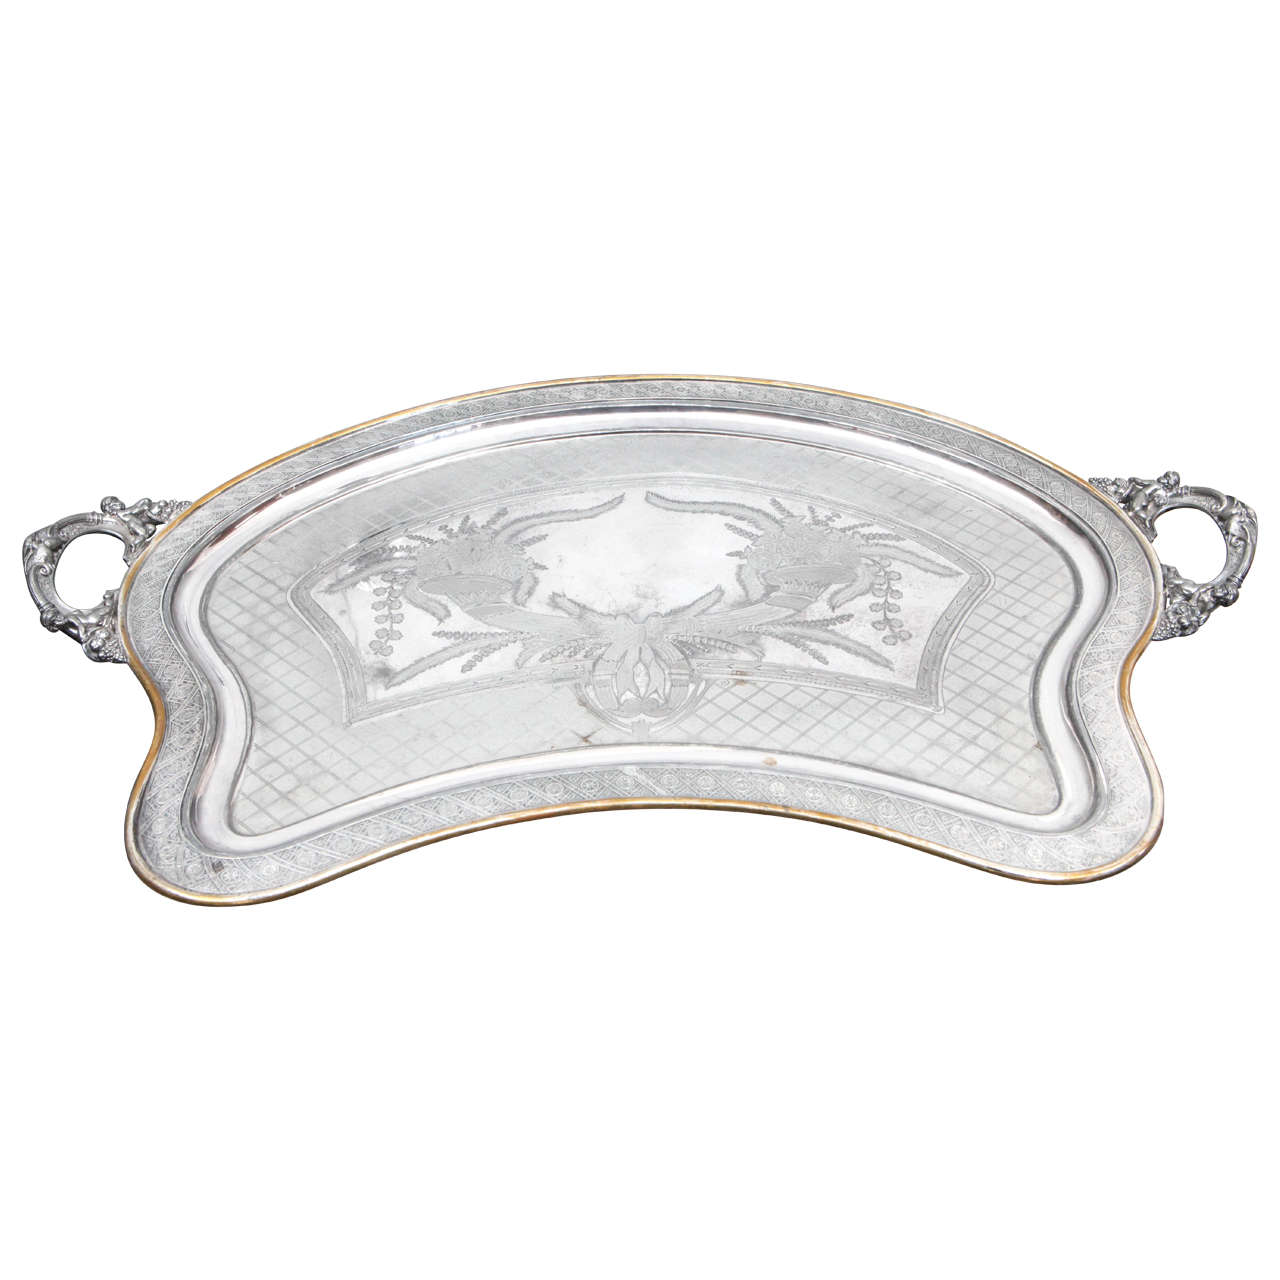 Silver Plated Butler Tray with Articulated Cherub Handles